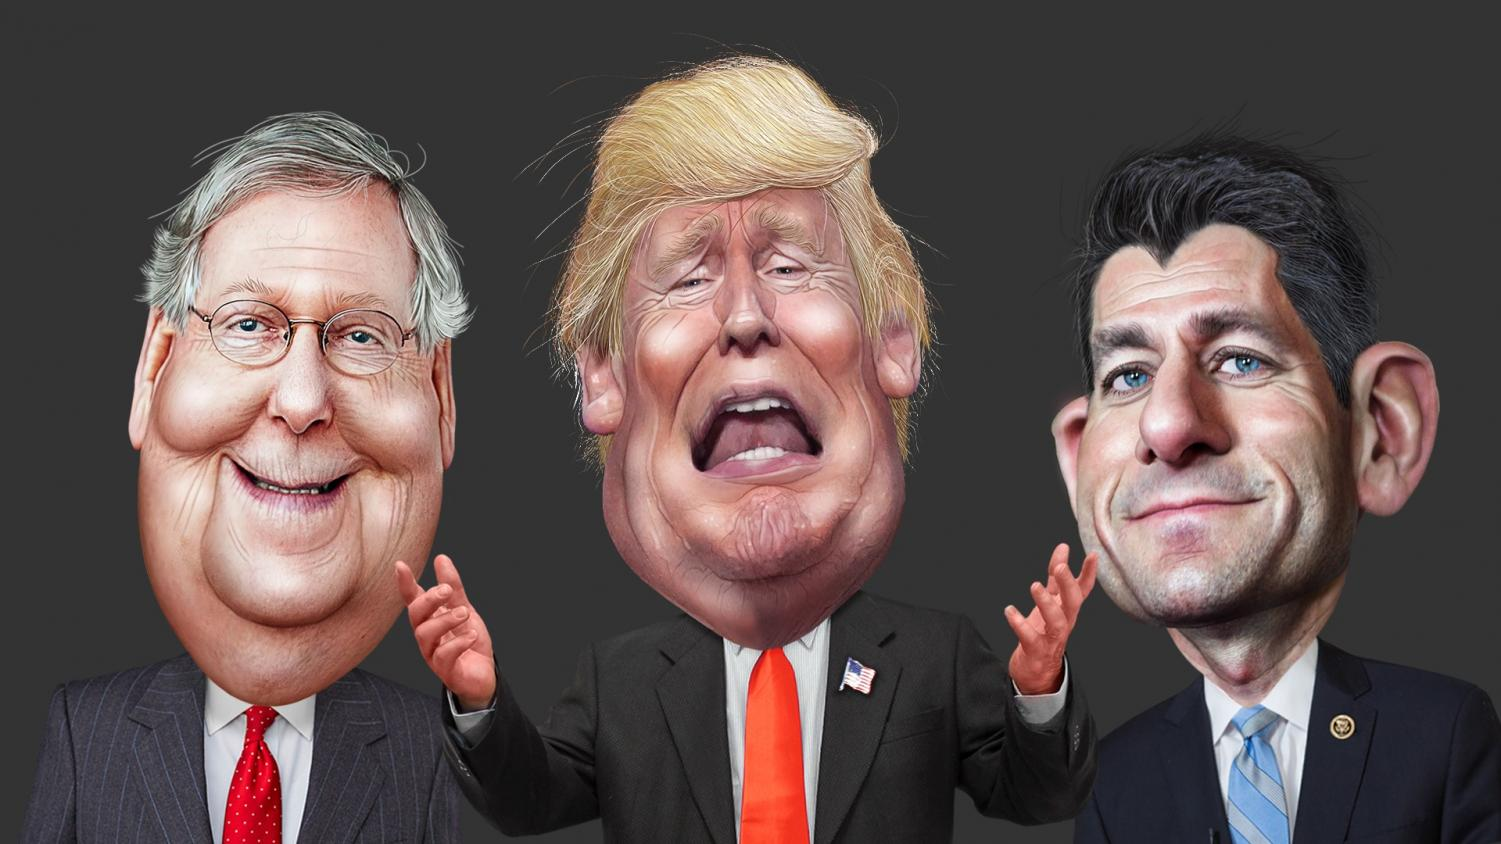 Caricature of Mitch McConnell, Donald Trump and Paul Ryan